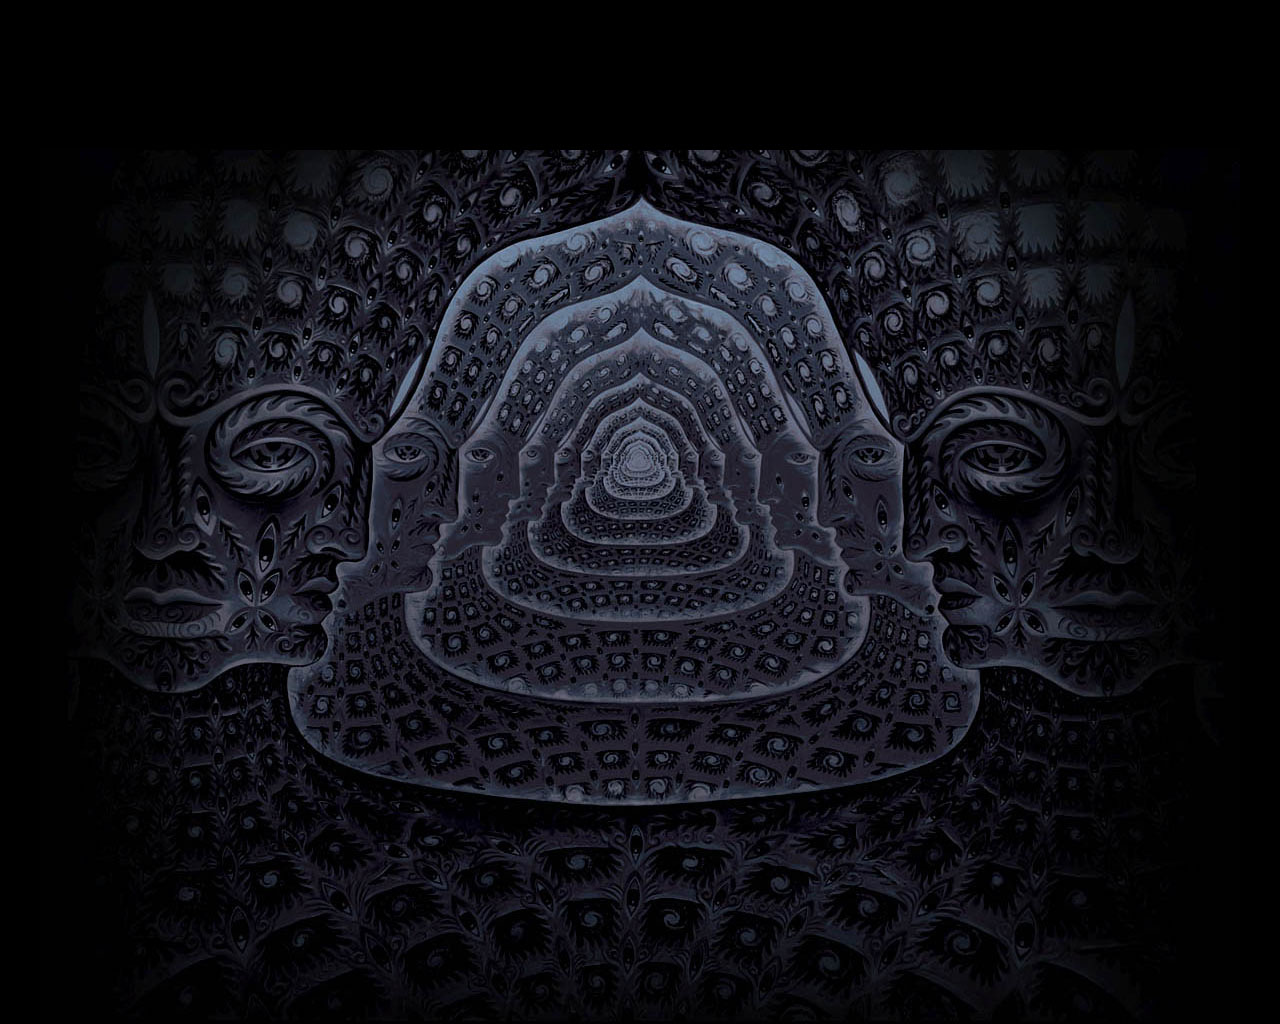 Tool Wallpaper HD